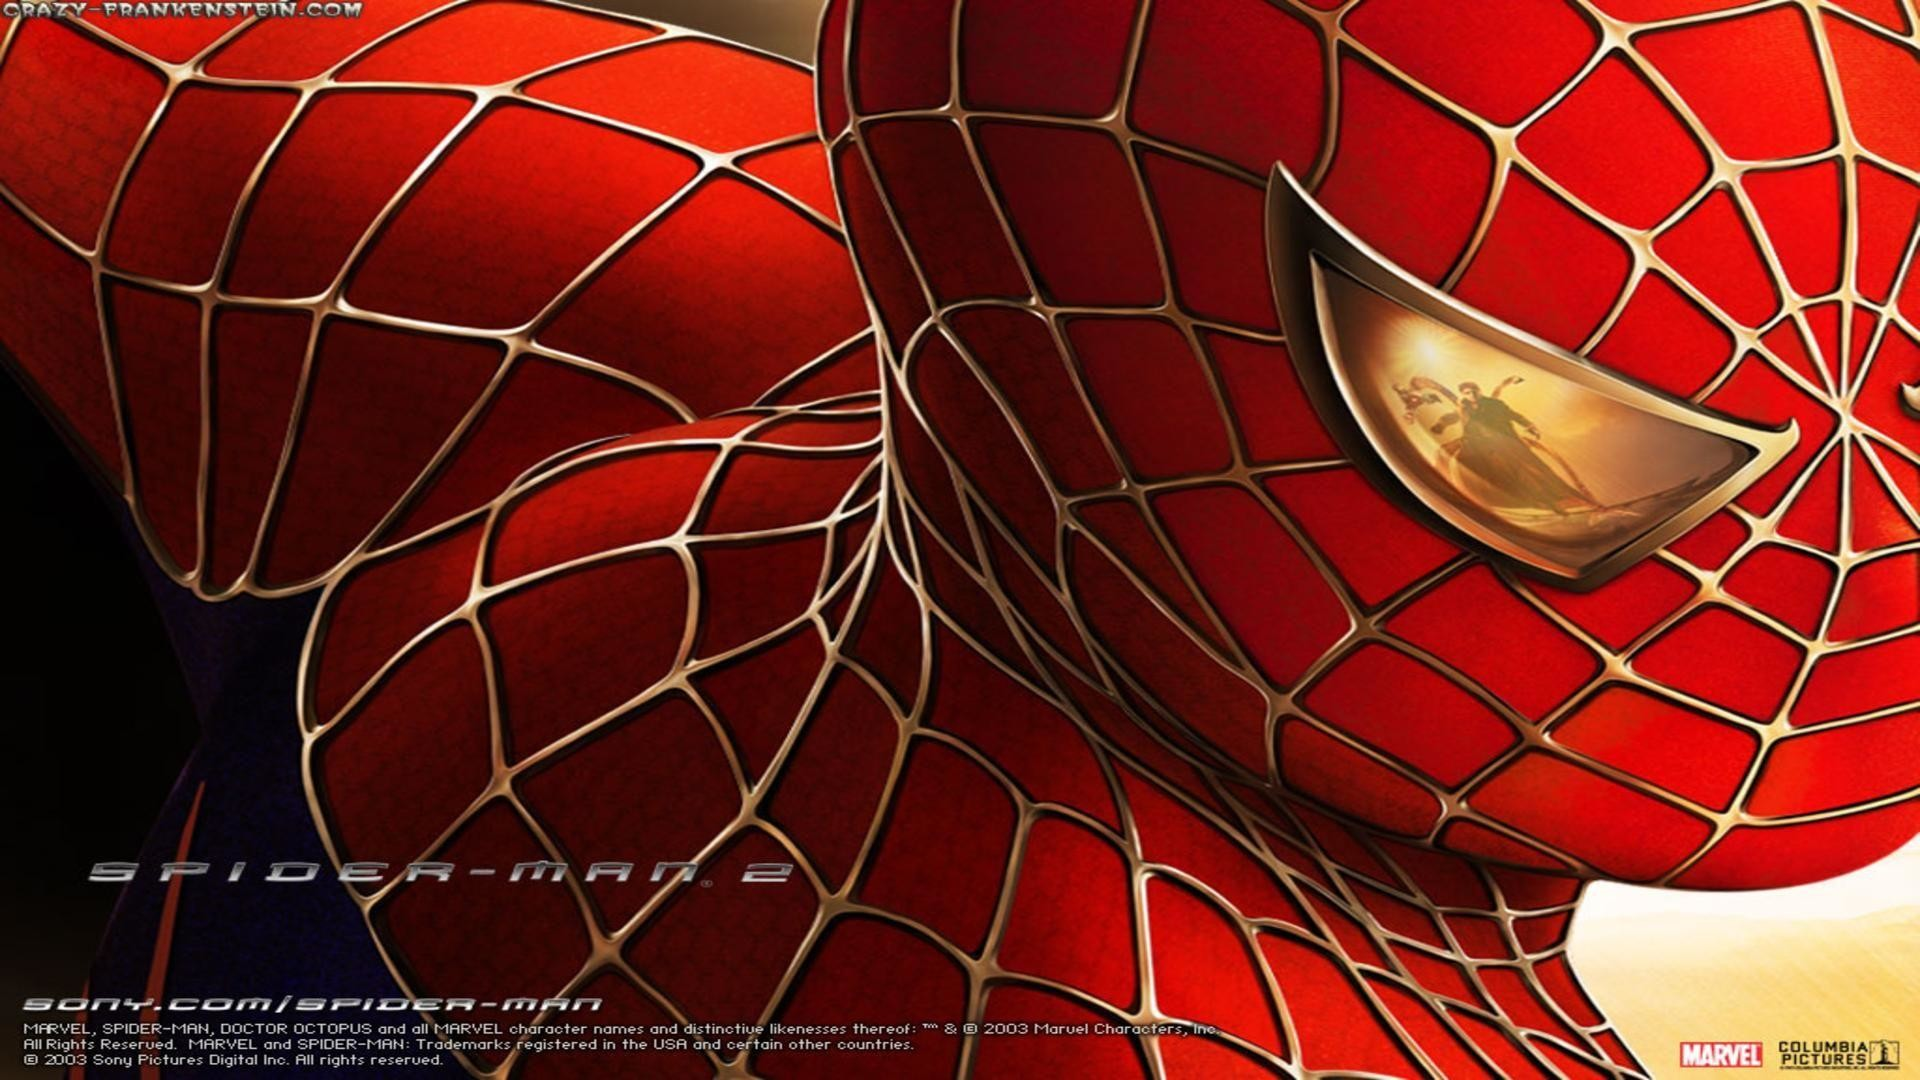 Game Of Spider Man Hd Wallpaper: Spiderman 1 Wallpaper ·①